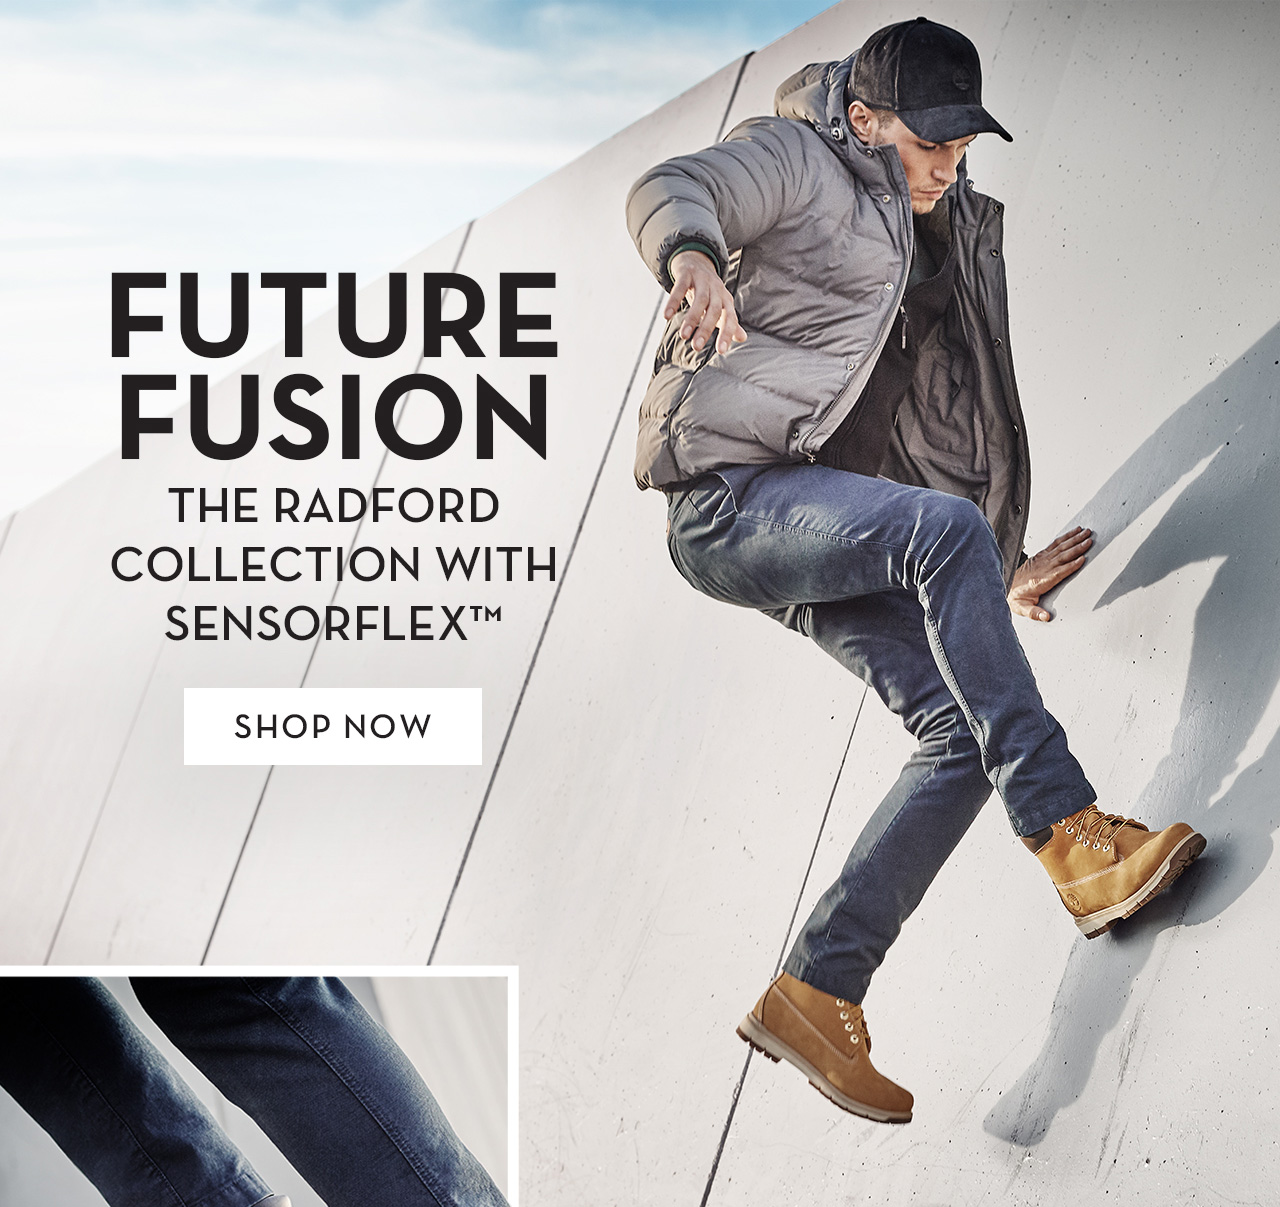 Future Fusion The Radford Collection With Sensorflex™ Shop Now